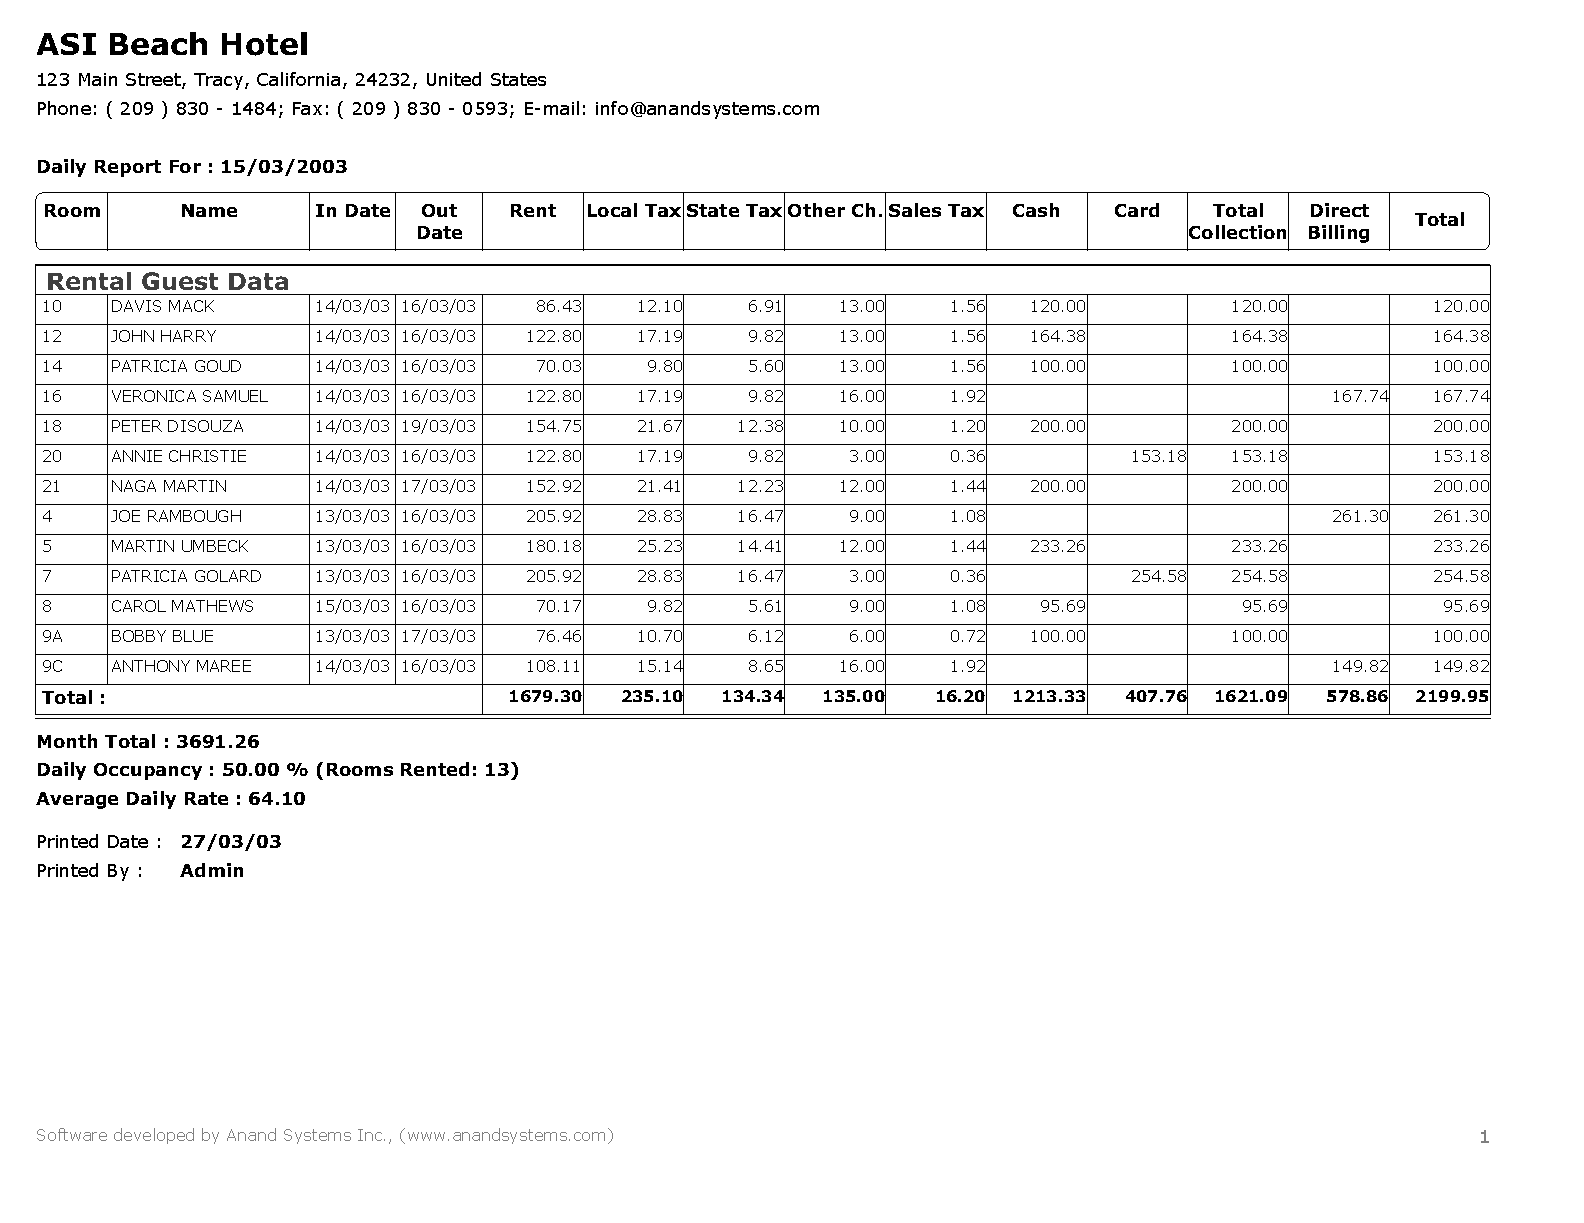 Features of hotel software frontdesk anand system inc for Daily hotel